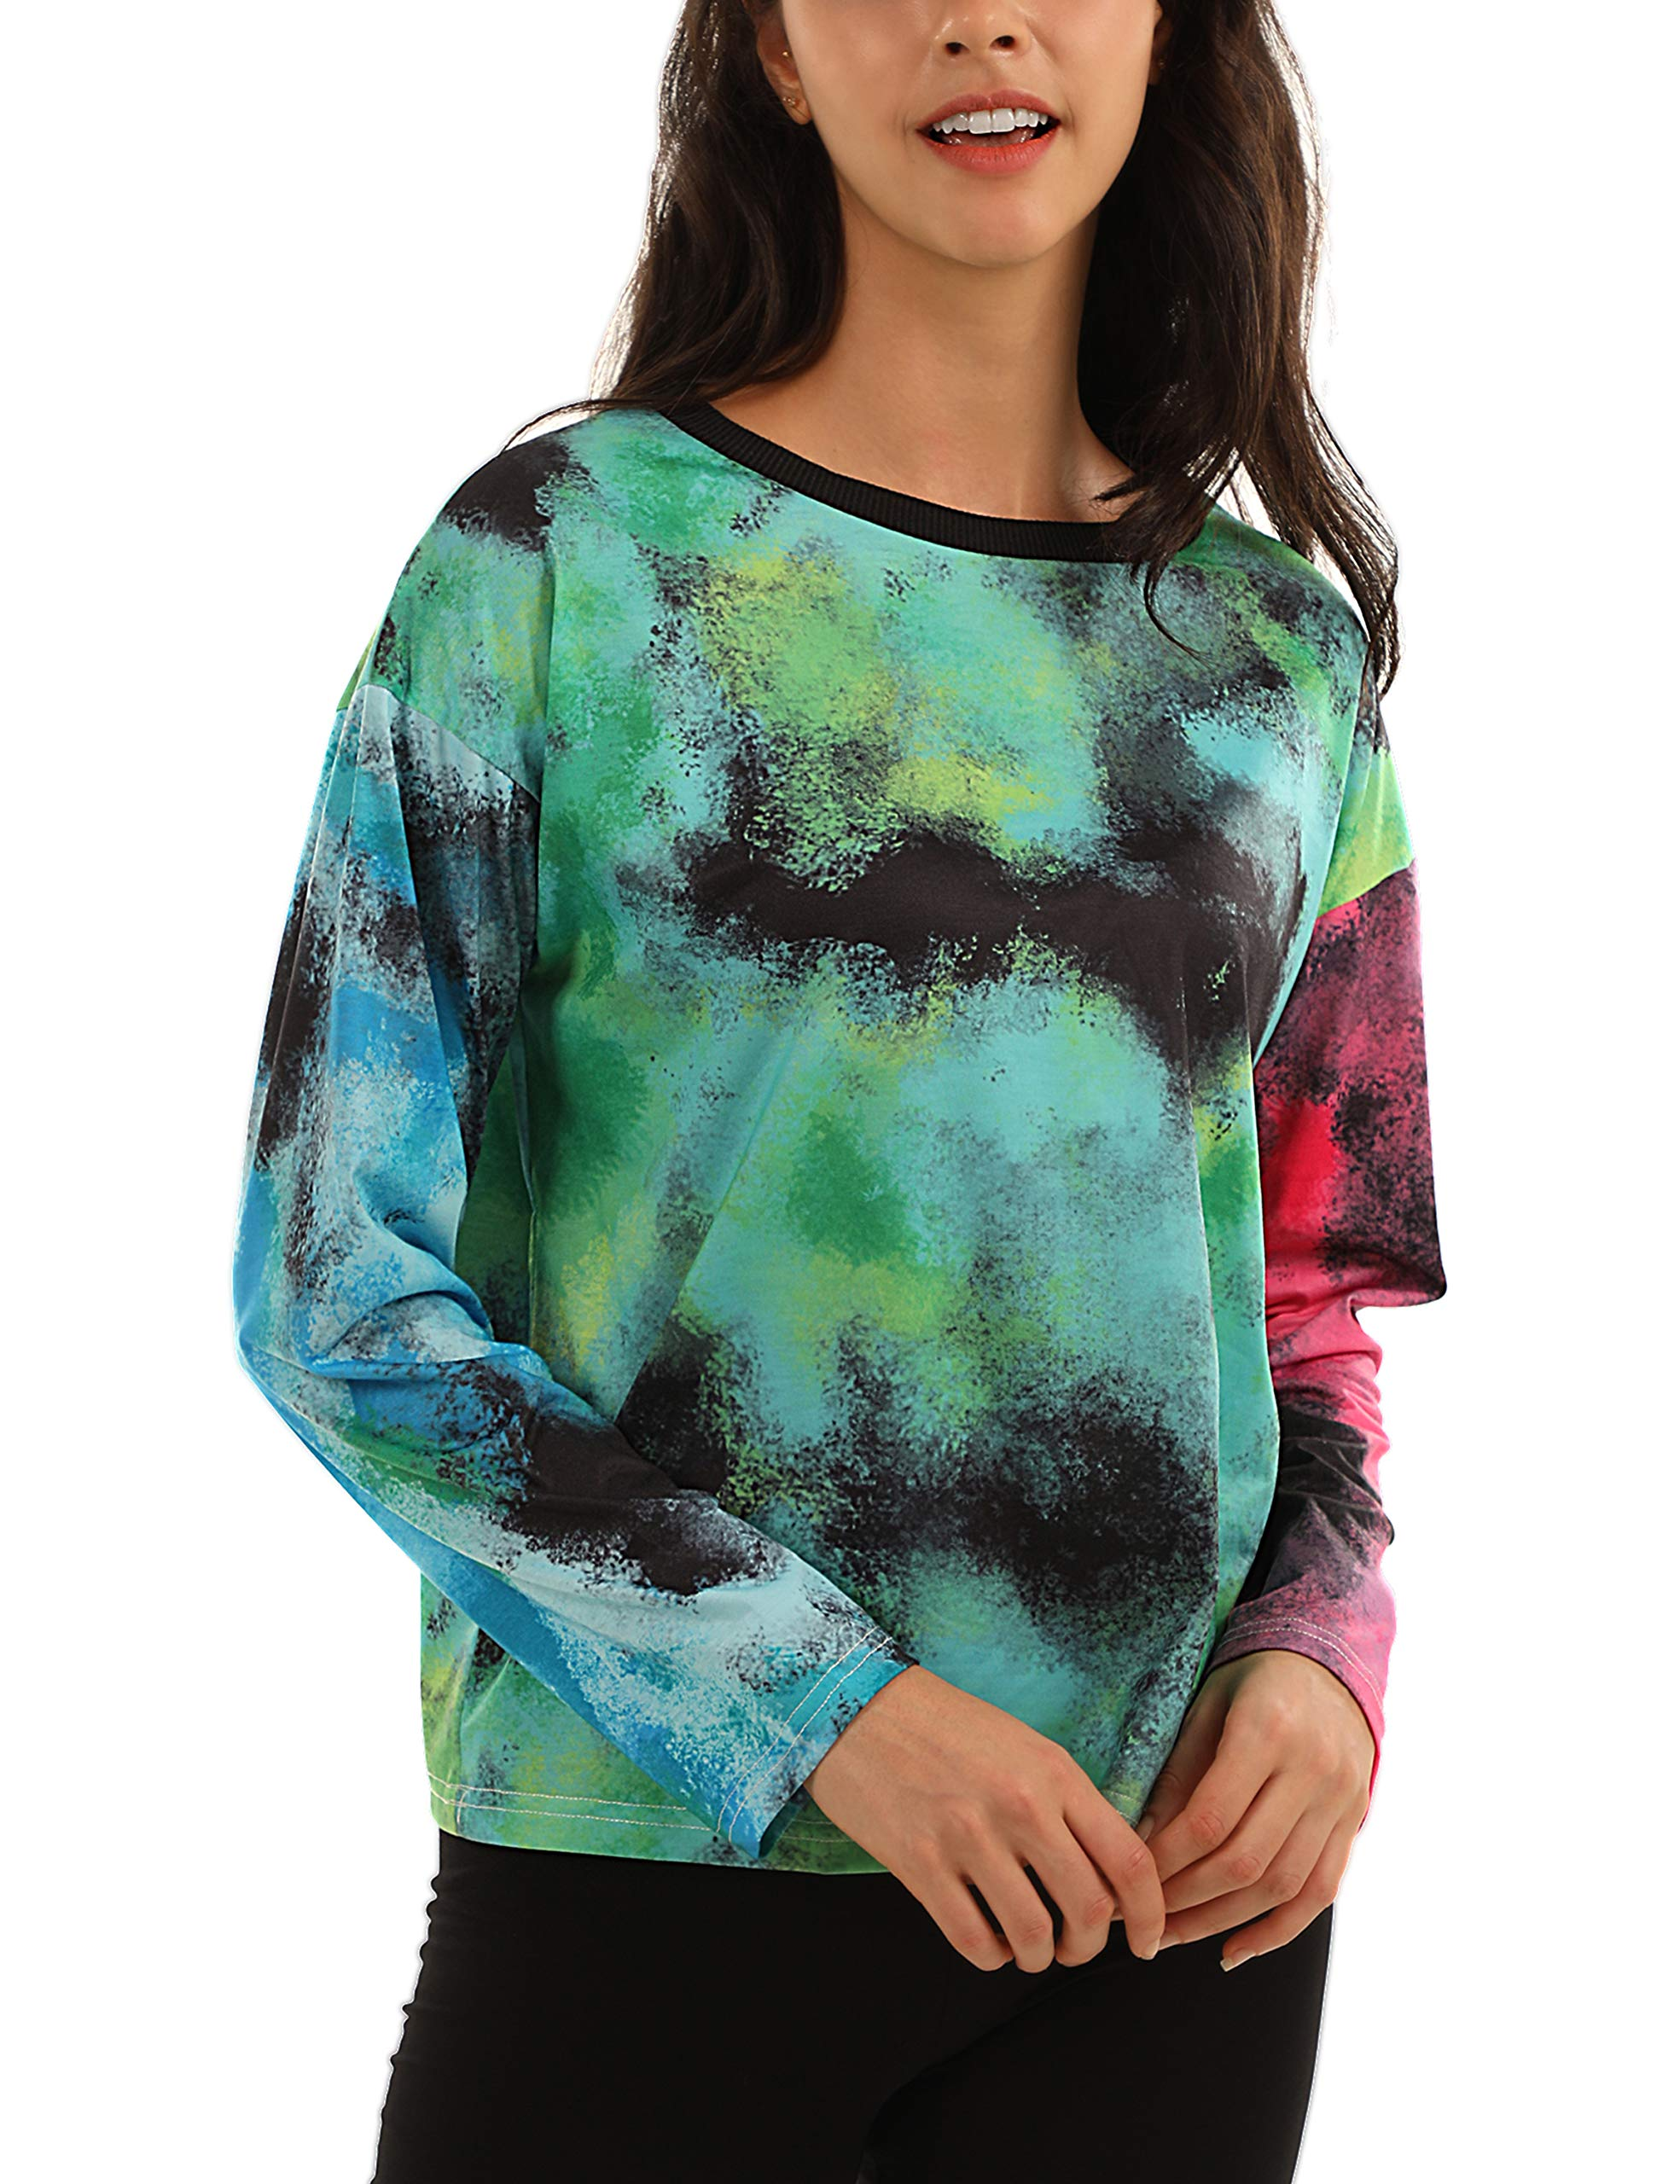 Blooming Jelly Tie Dye Shirt Long Sleeve Crew Neck T Shirts Casual Cute Tops Tee(M,Multi)